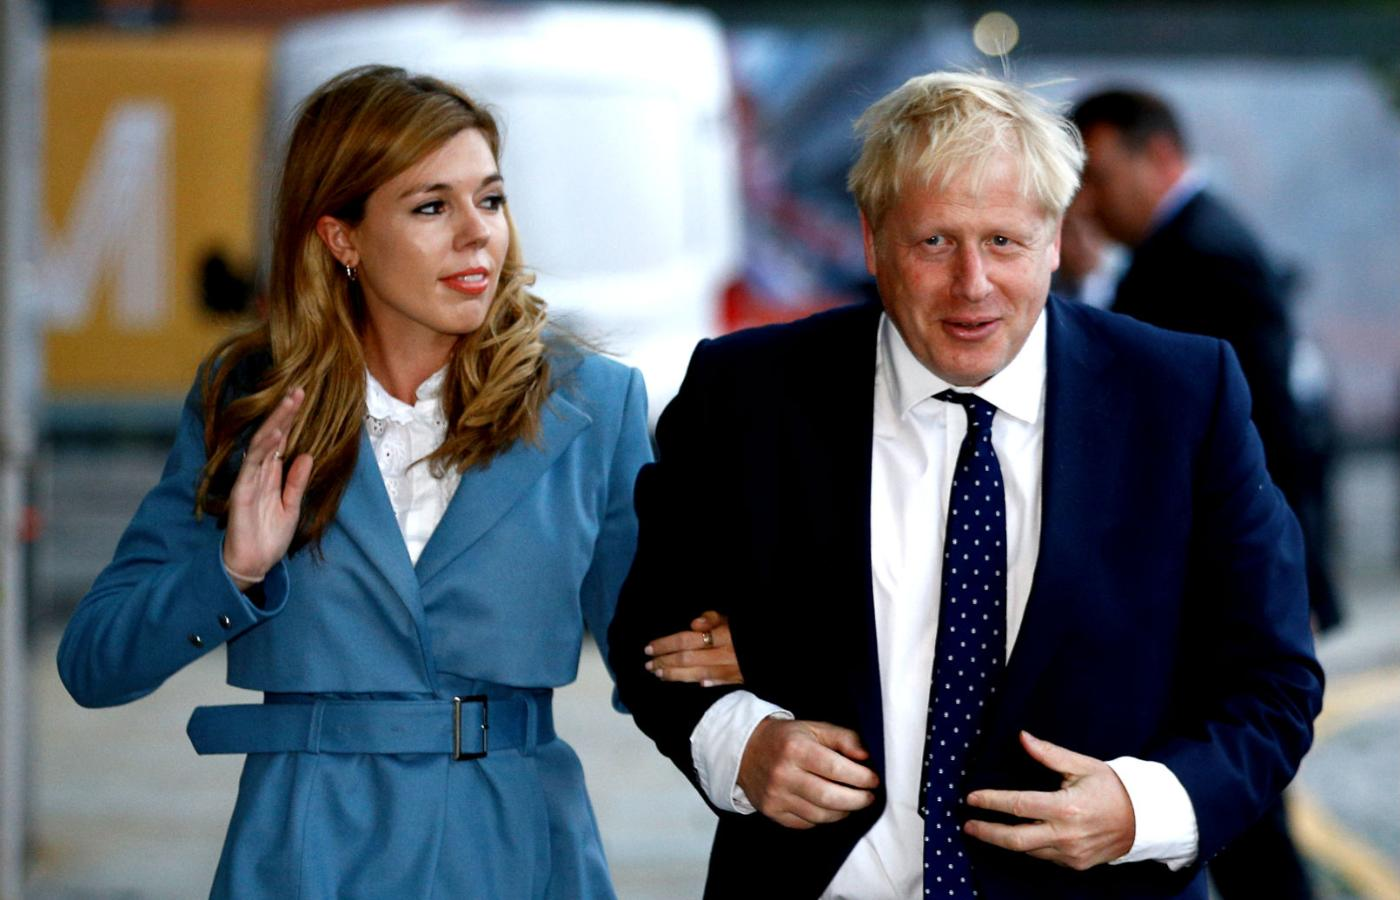 Boris Johnson z partnerką Carrie Symonds